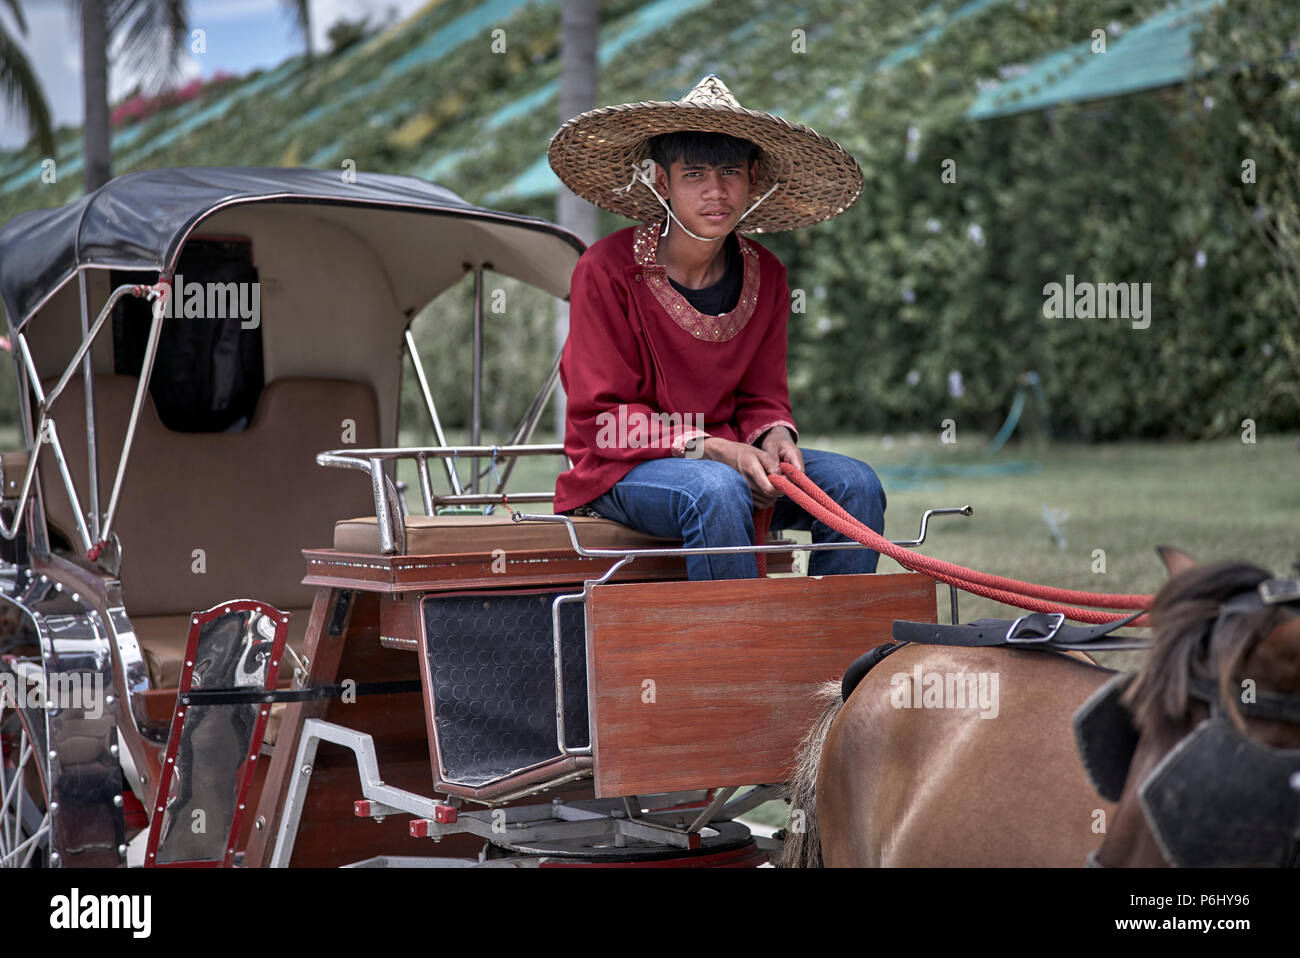 Horse and trap tourist ride Thailand Southeast Asia - Stock Image